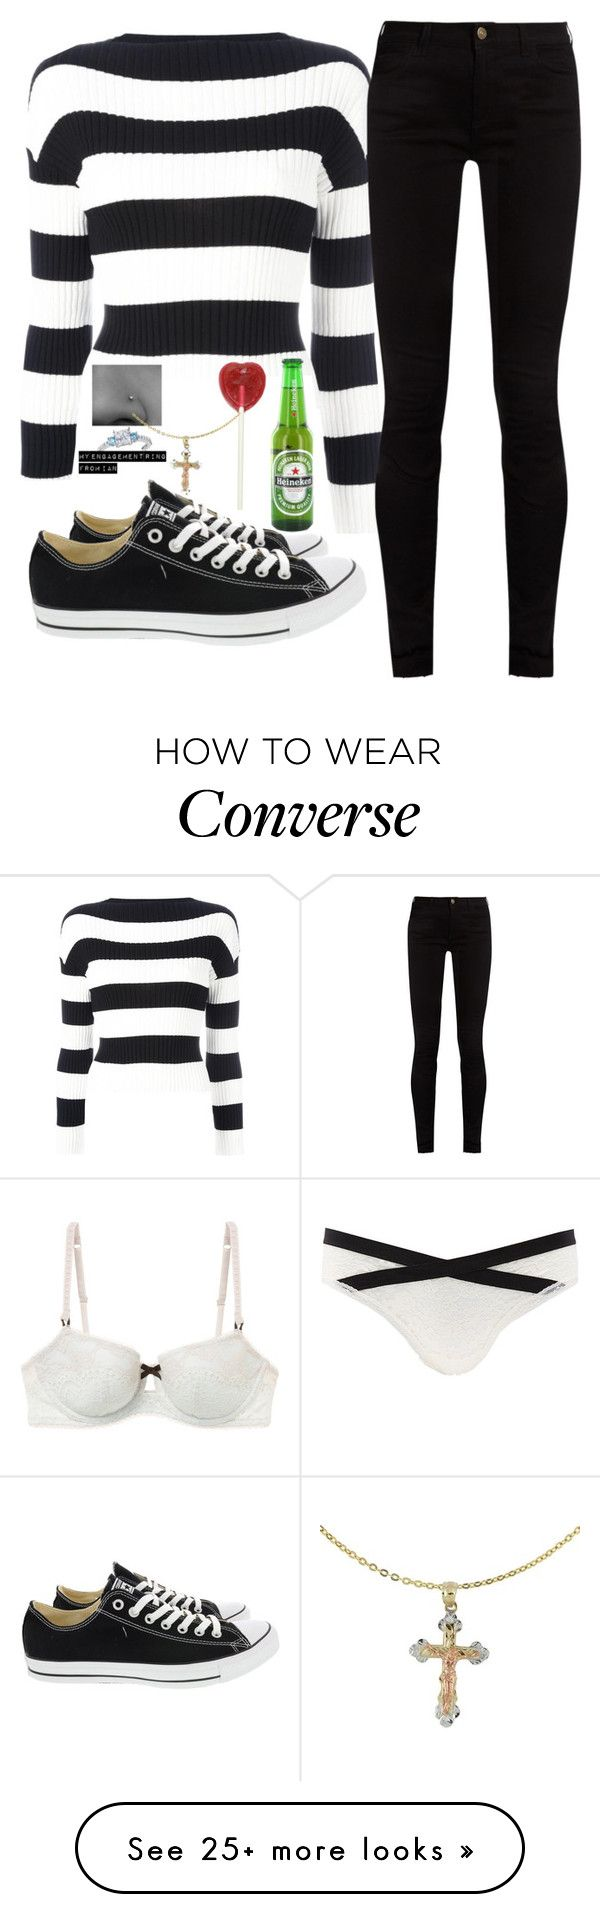 """""""Celebrating Mine and Ian's engagement with the Gallagher's!"""" by j-j-fandoms on Polyvore featuring Heidi Klum Intimates, Charlotte Russe, Boutique Moschino, Gucci, Converse, Cross and Amour"""